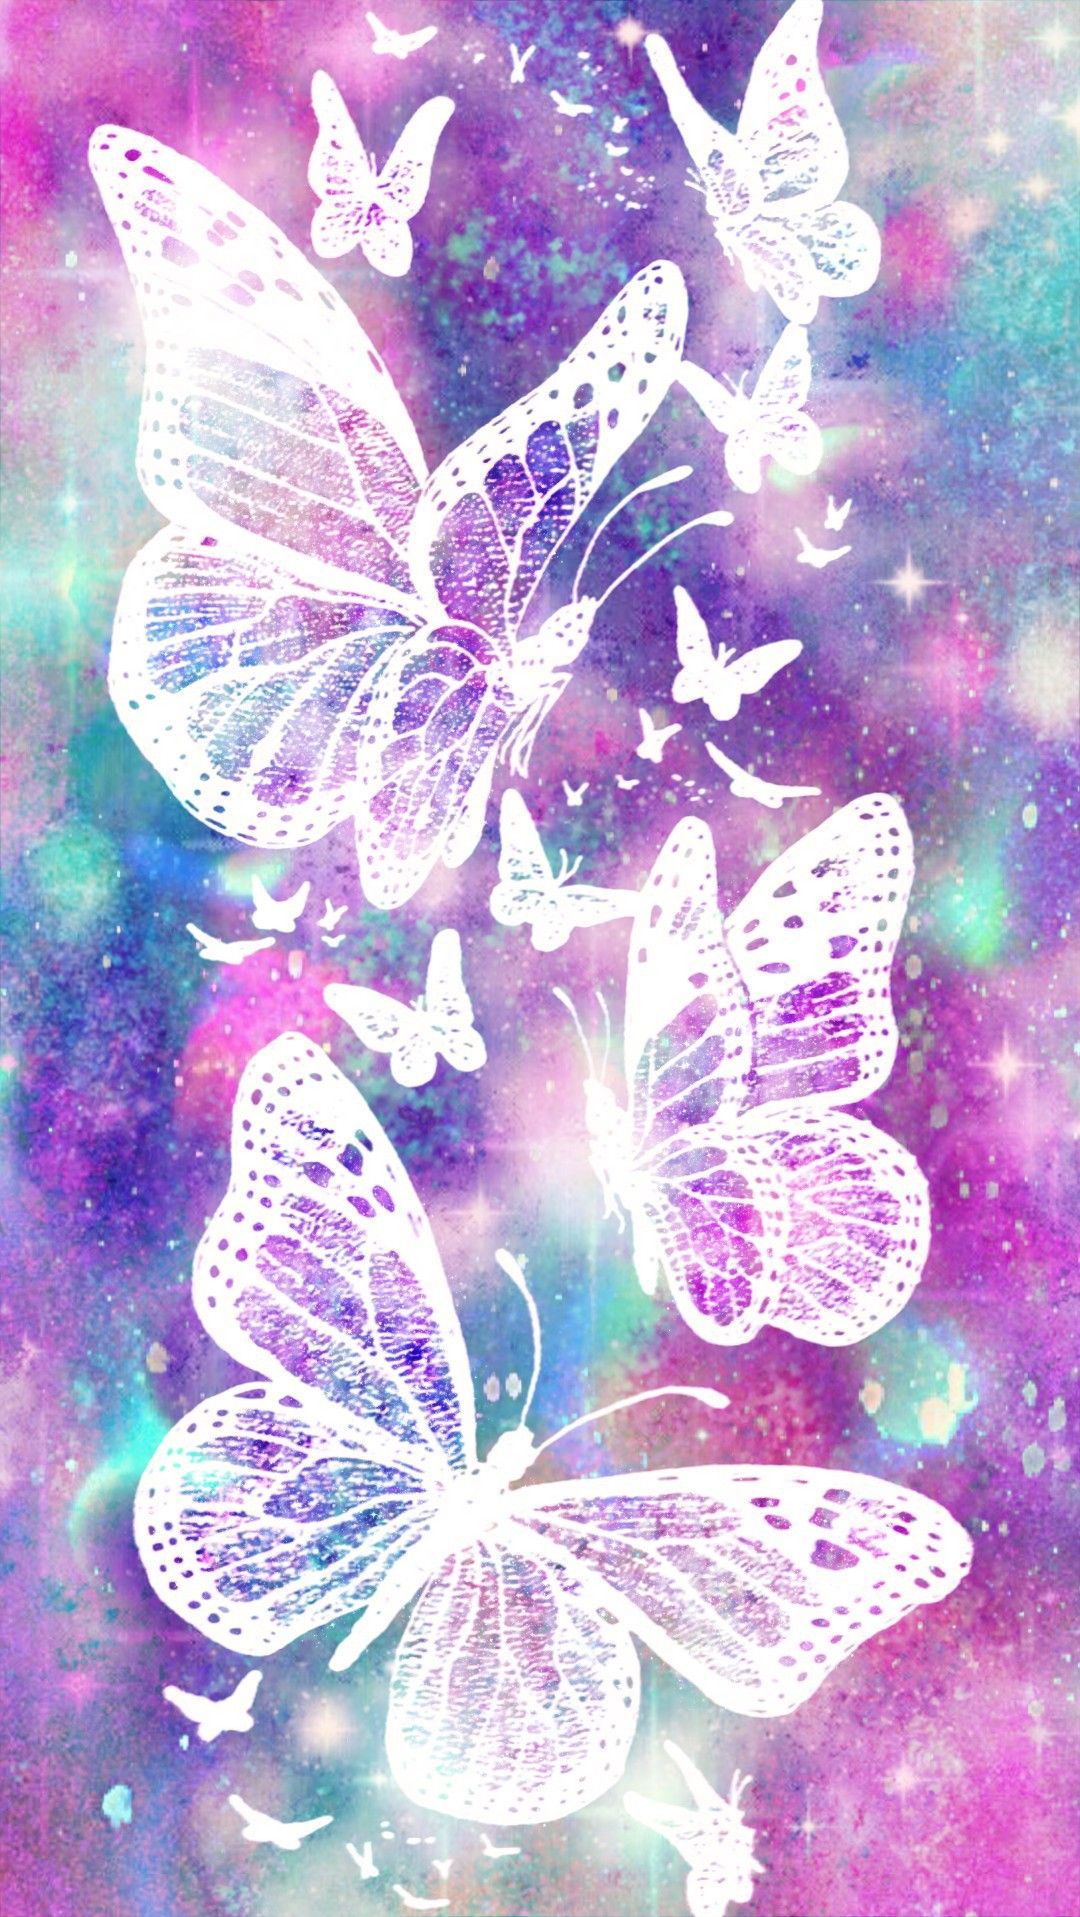 Glistening Butterflies Galaxy Made By Me Purple Sparkly Wallpapers Backgrou Purple Butterfly Wallpaper Butterfly Wallpaper Backgrounds Butterfly Wallpaper